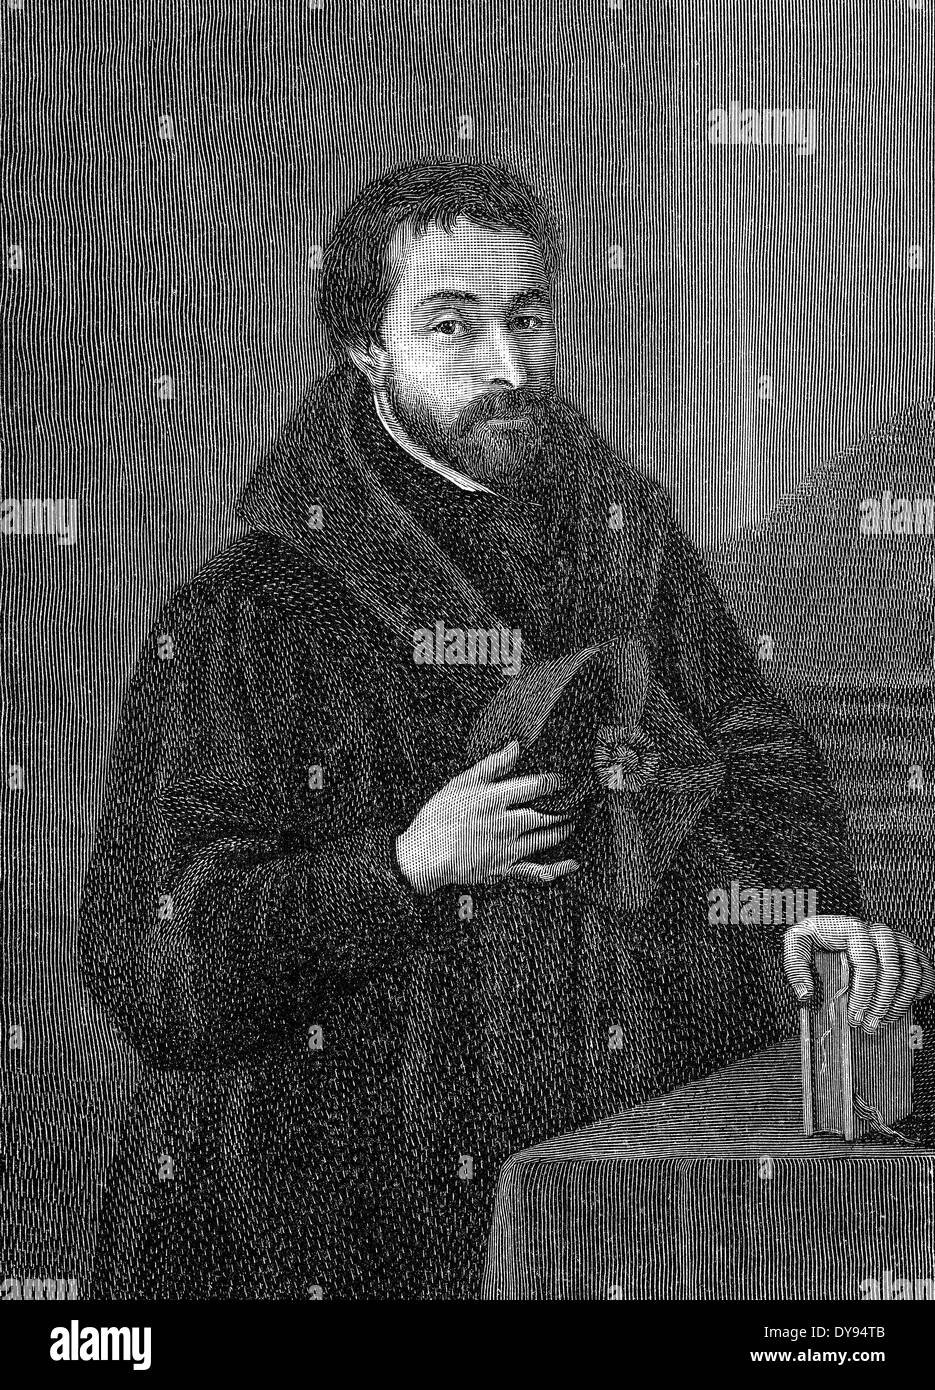 Portrait of Friedrich Spee, 1591 - 1635, a German Jesuit, moral theologian, poet, writer and witch theorist, - Stock Image